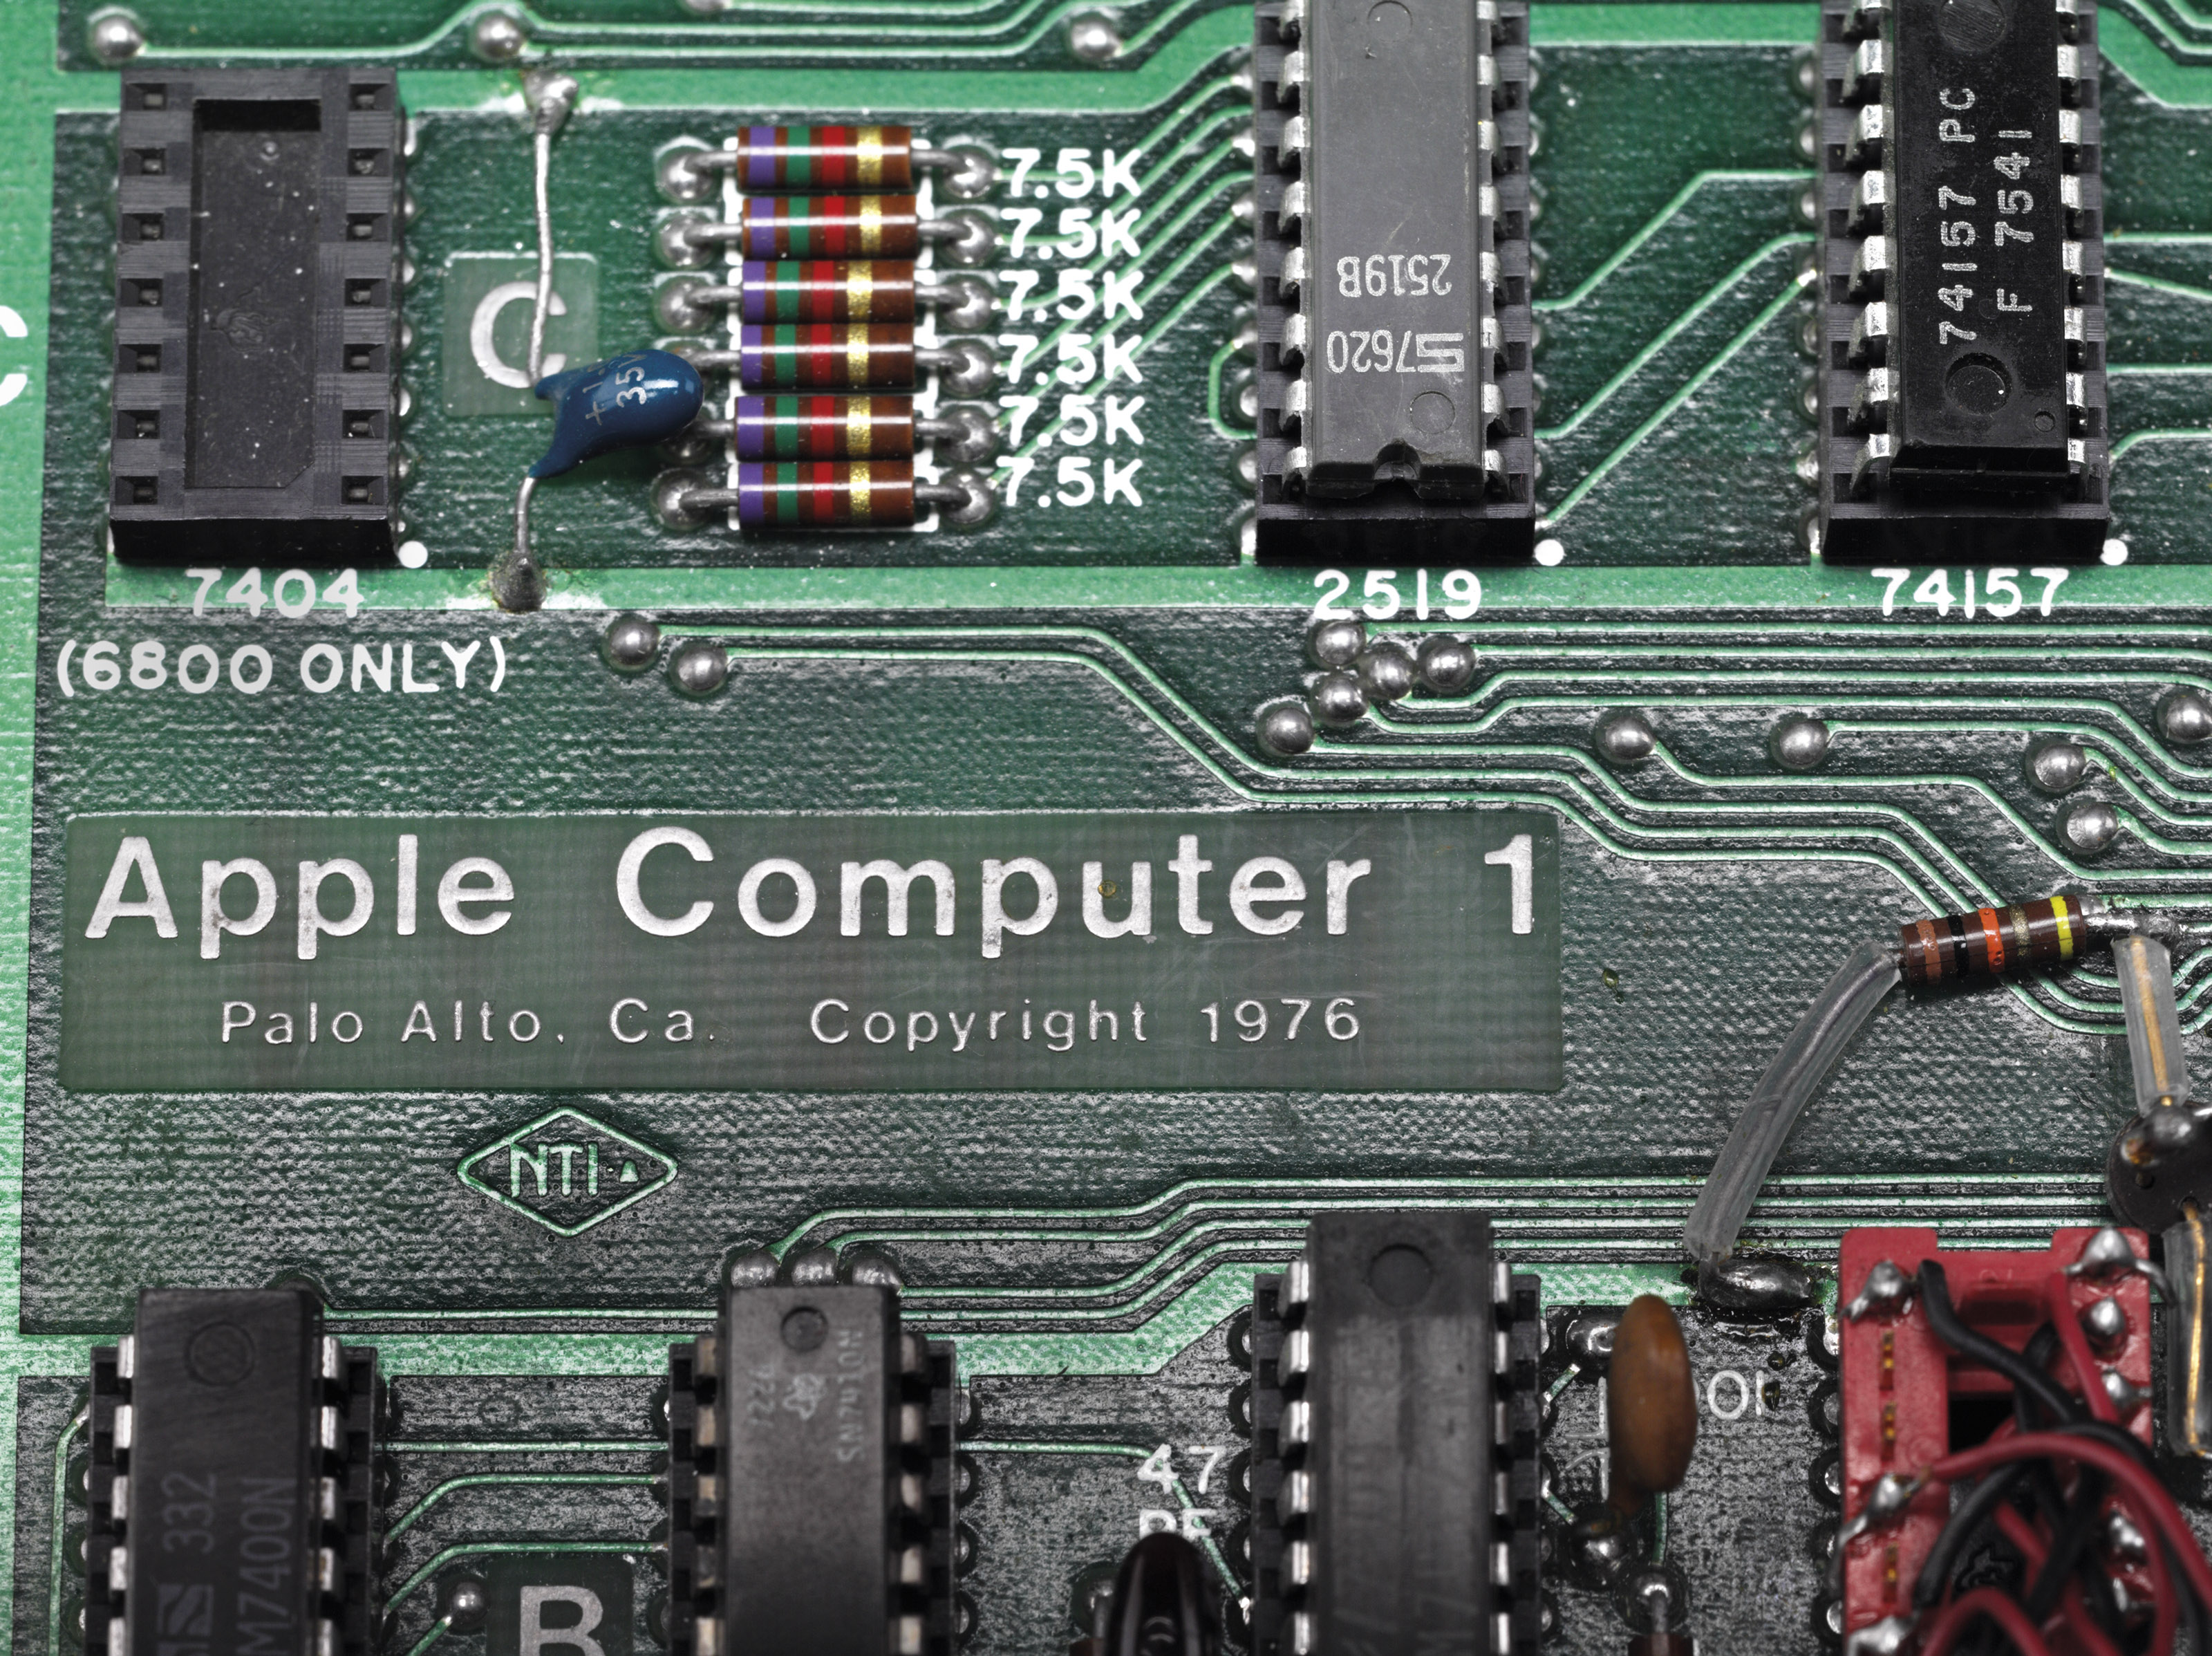 A WORKING APPLE-1 PERSONAL COMPUTER. PALO ALTO, 1976.